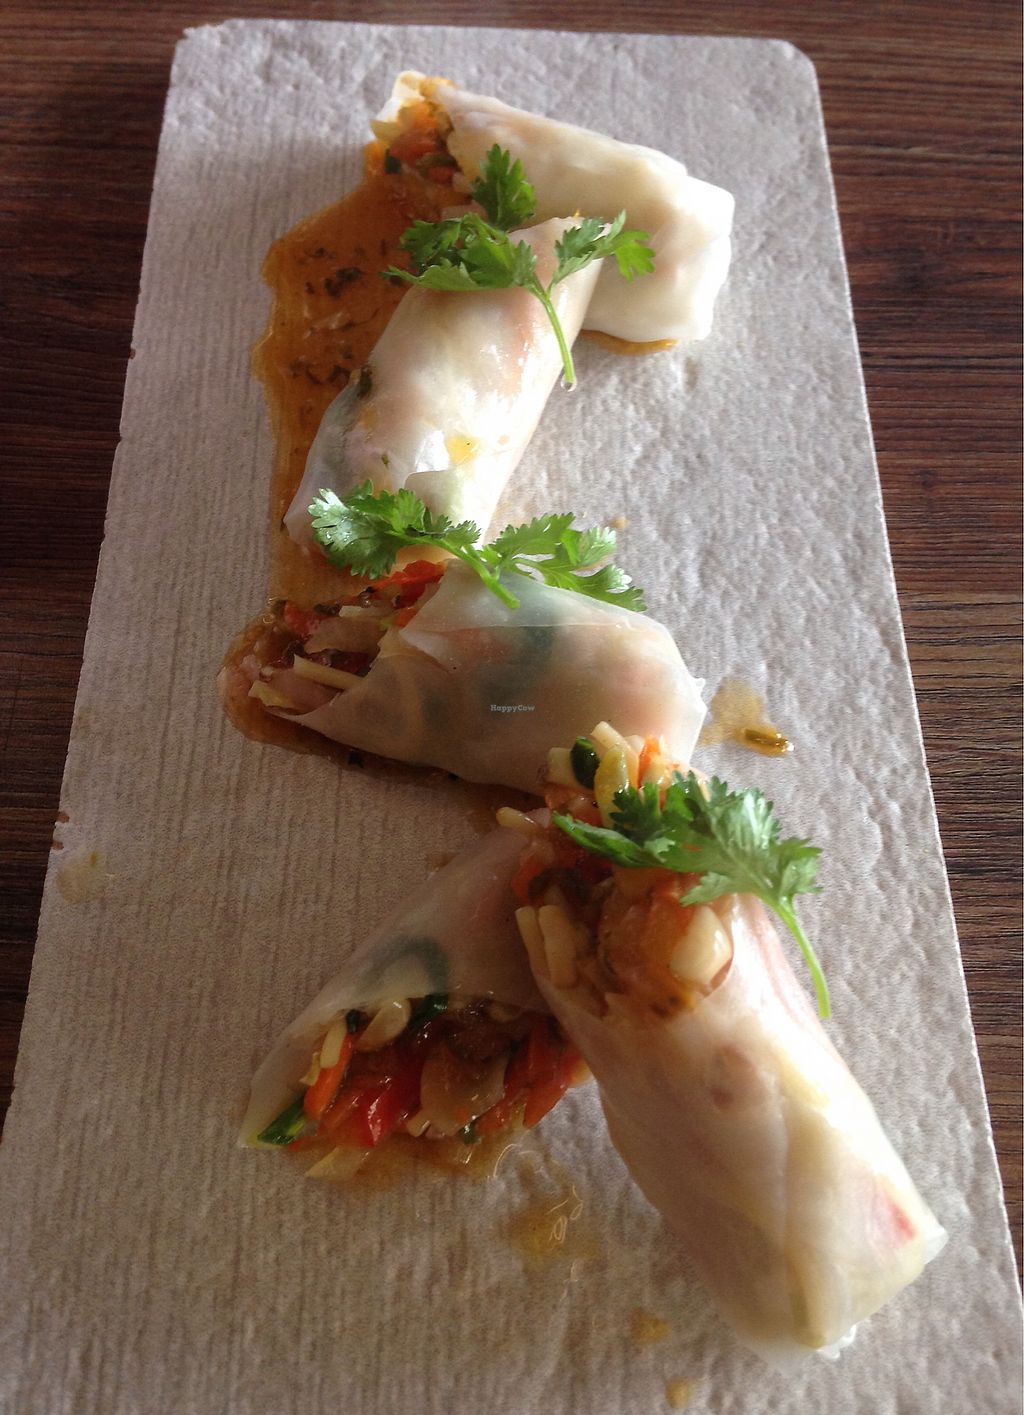 """Photo of Hakuna Matata Restaurant  by <a href=""""/members/profile/SophieCarolyn"""">SophieCarolyn</a> <br/>Rice paper rolls <br/> March 14, 2018  - <a href='/contact/abuse/image/114529/370406'>Report</a>"""